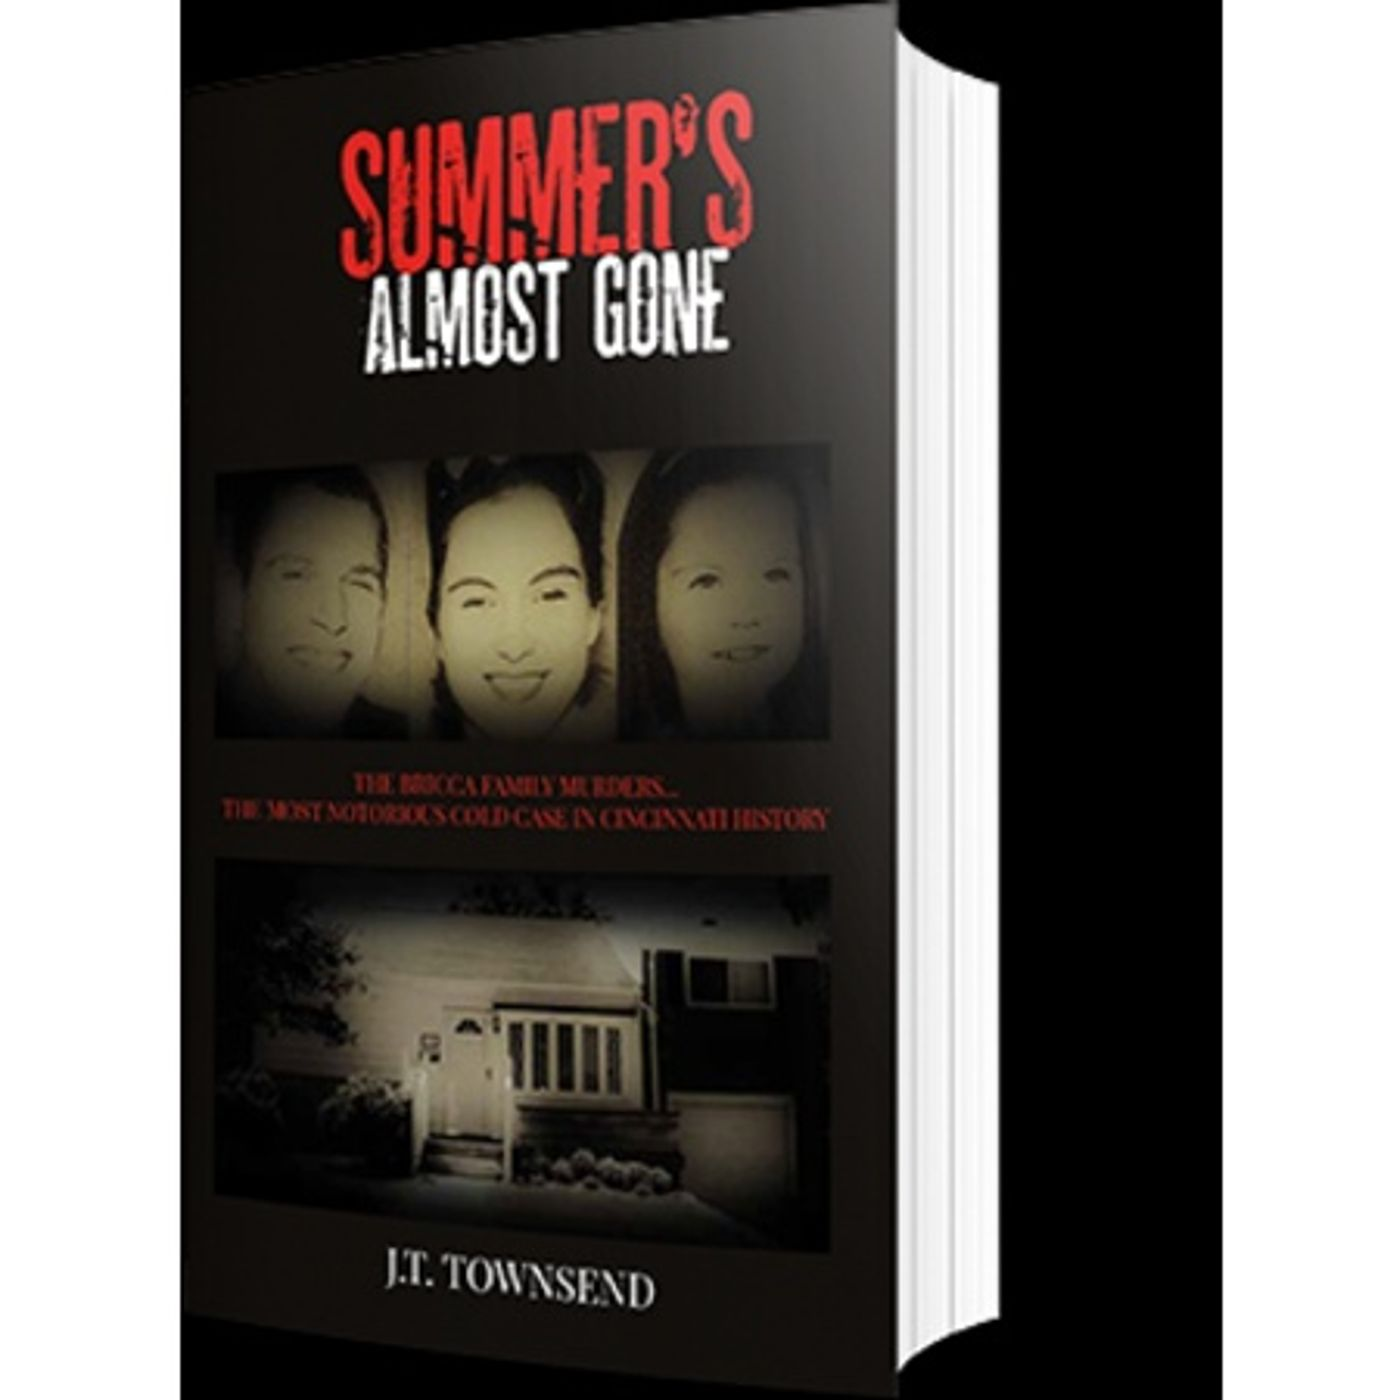 SUMMER'S ALMOST GONE-J.T. Townsend